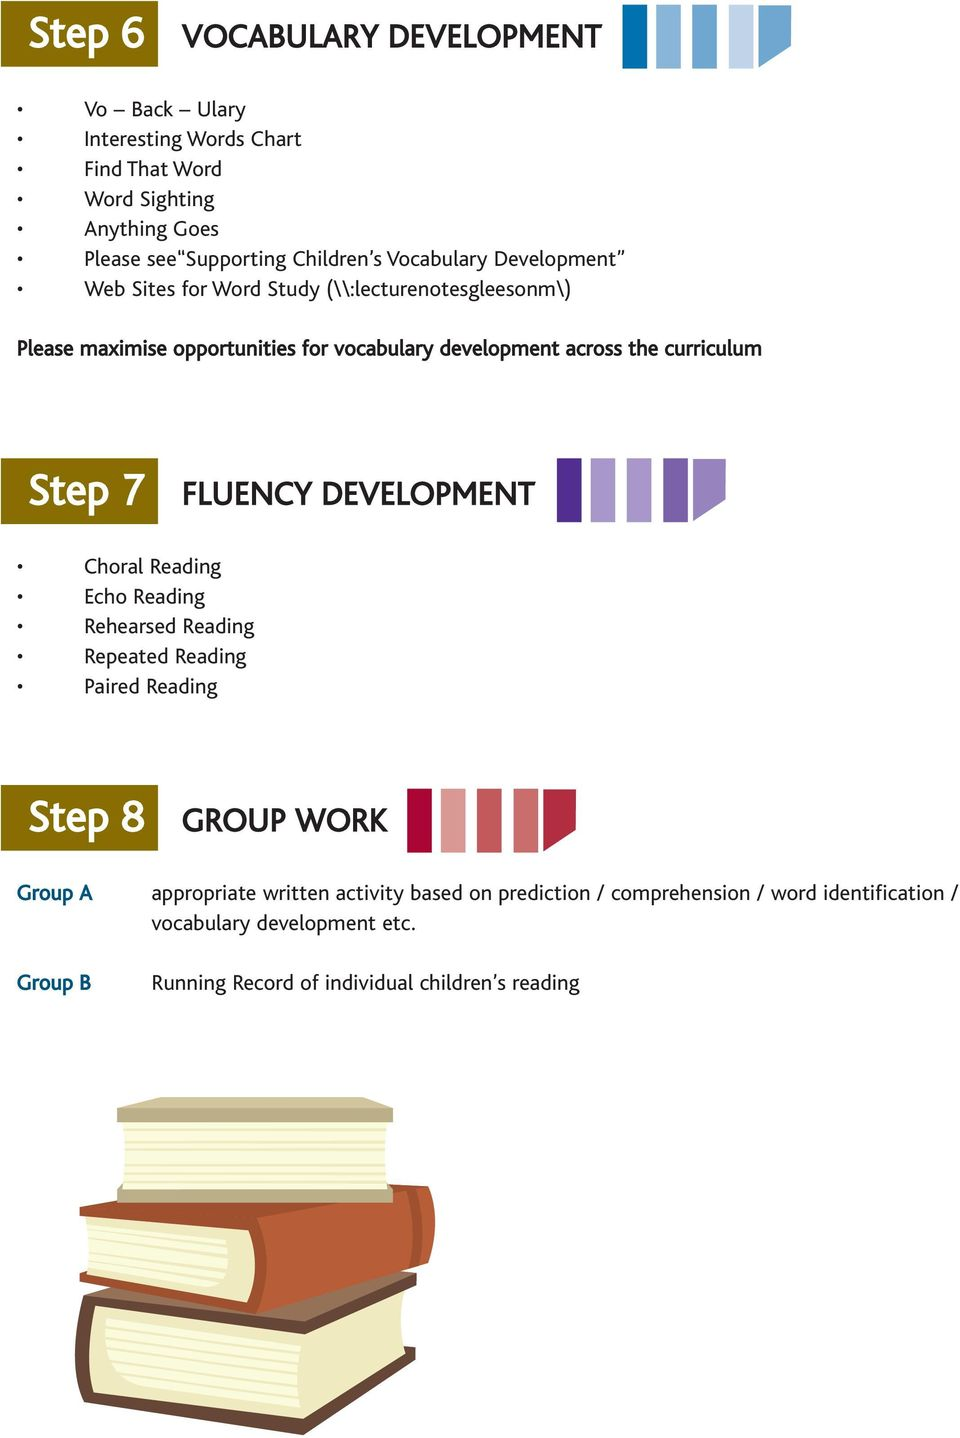 curriculum Step 7 FLUENCY DEVELOPMENT Choral Reading Echo Reading Rehearsed Reading Repeated Reading Paired Reading Step 8 GROUP WORK Group A